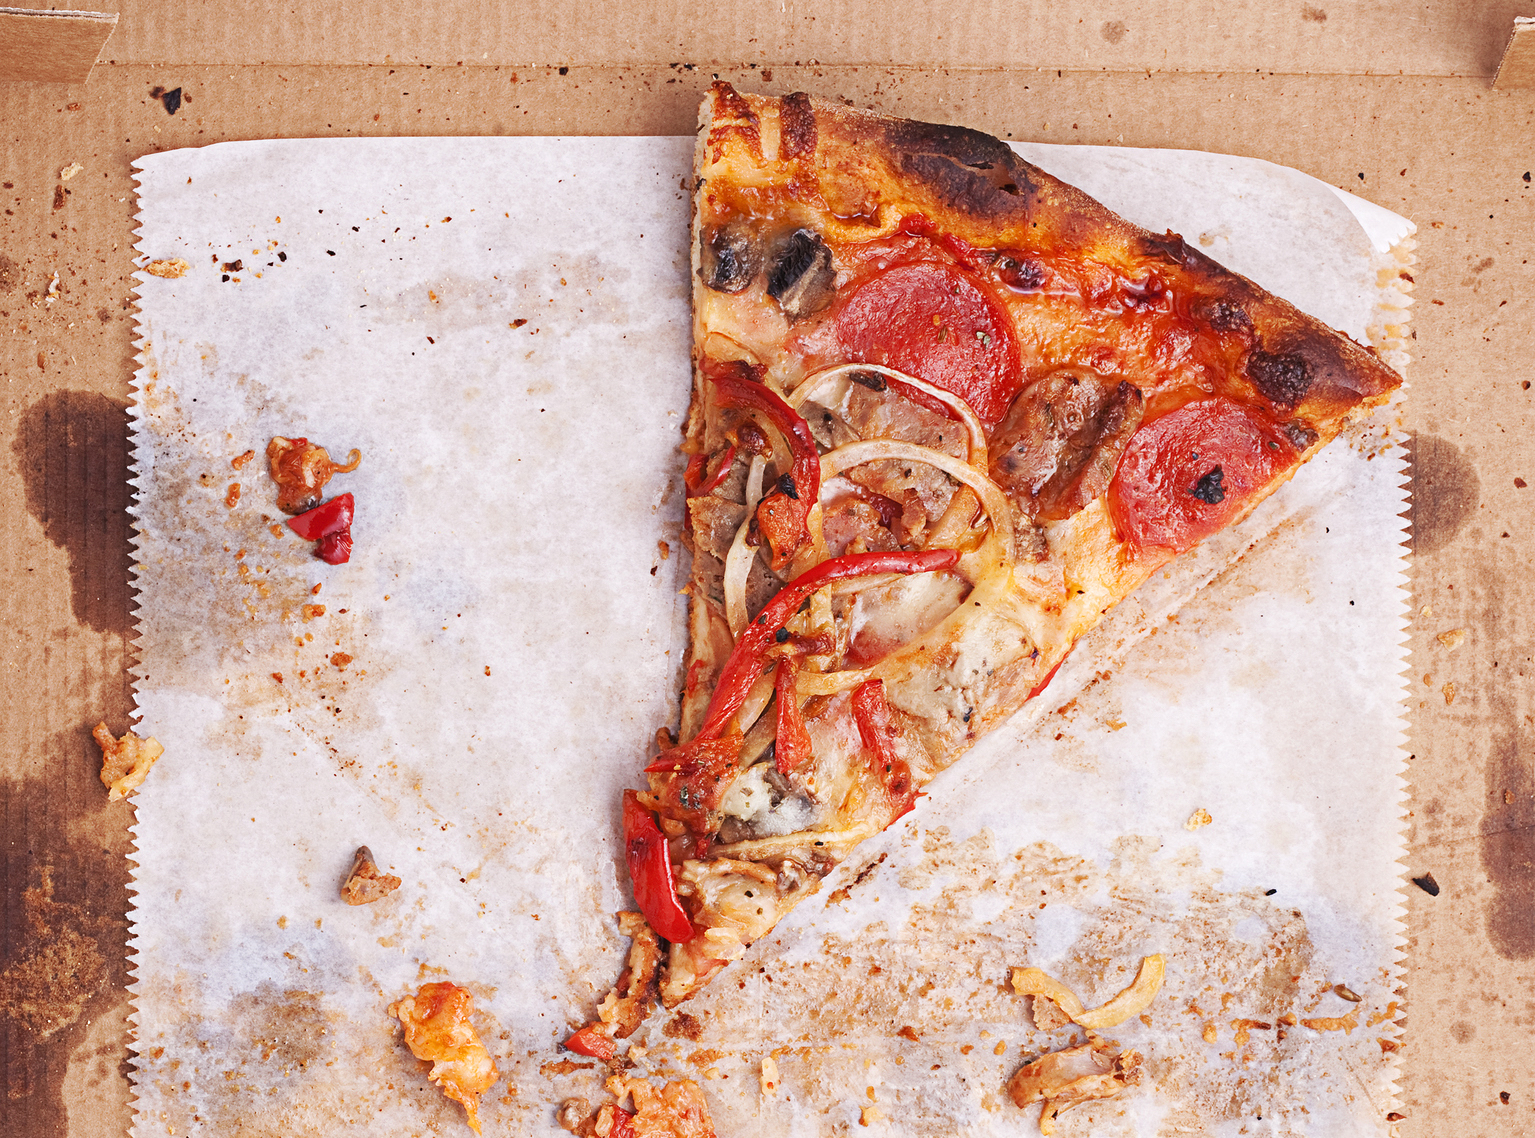 How long can you keep leftover pizza in the fridge